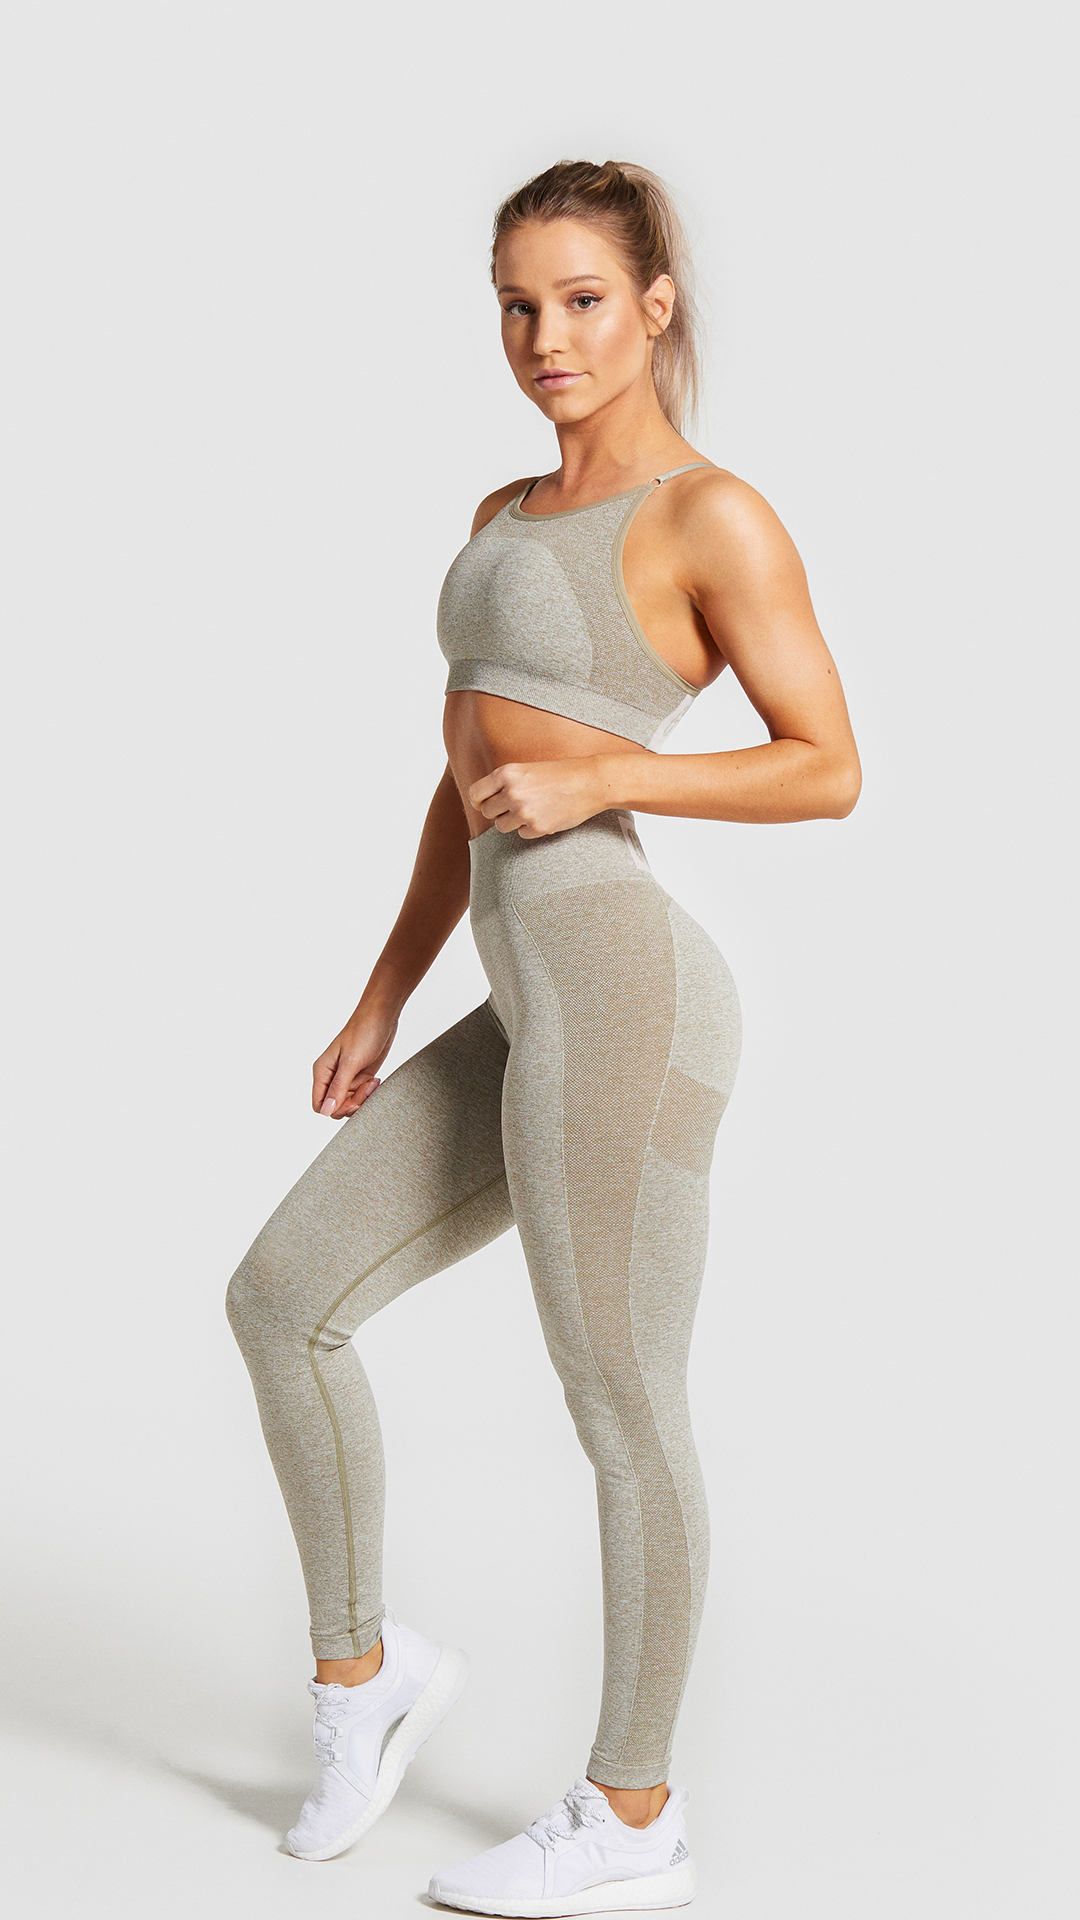 6a5ea545ab30a A new era of Flex. The High Waisted Flex Leggings combine the signature  sculpting and seamless knit of the original Flex with our famously  flattering ...